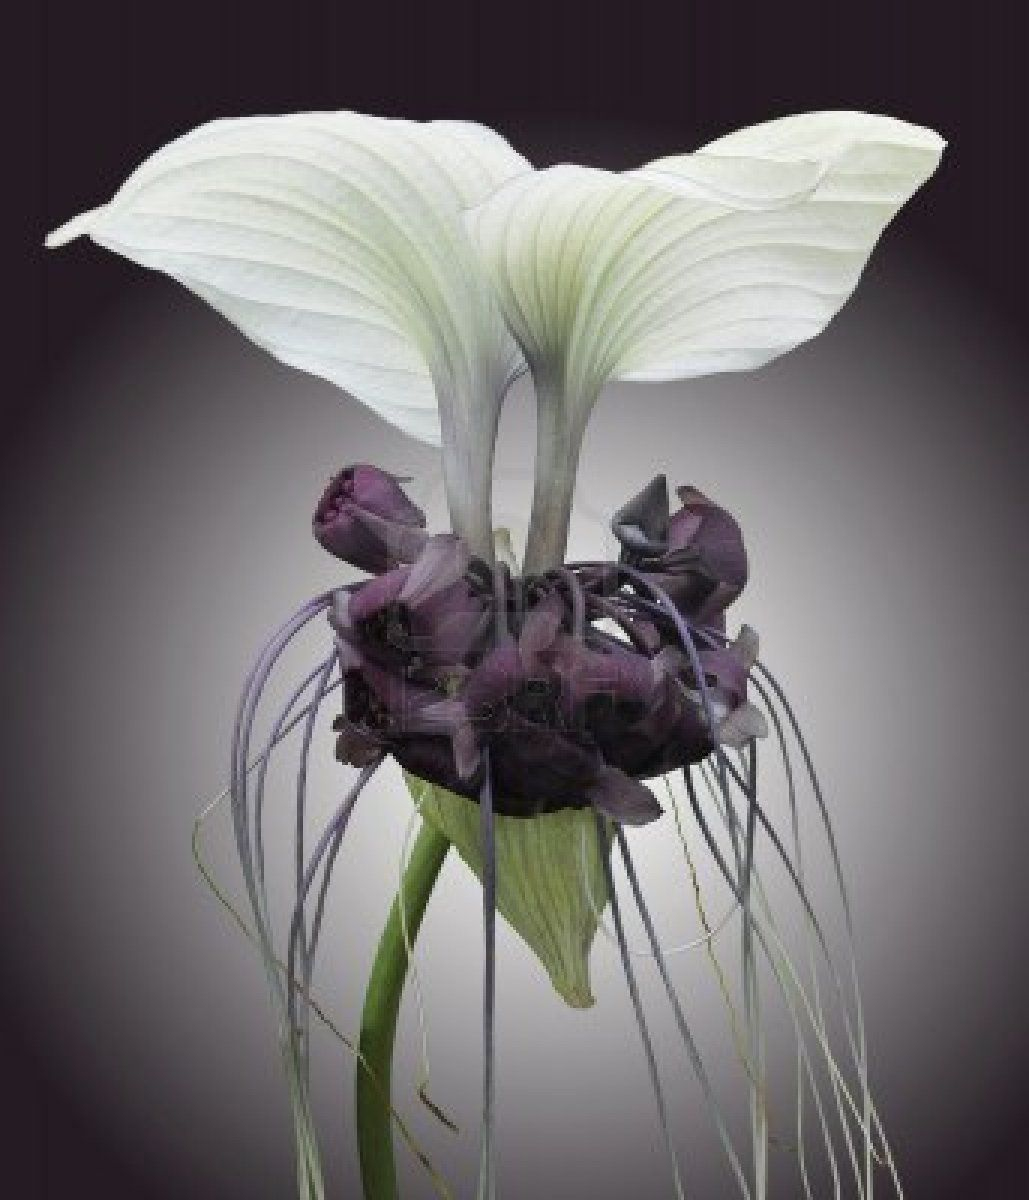 Bat Plant or Devil Flower, Tacca chantrieri, is native to Southeast Asia. Bat plants have black or white flowers; the flowers on both varieties resemble the wings and head of a bat with long filaments forming a tail.